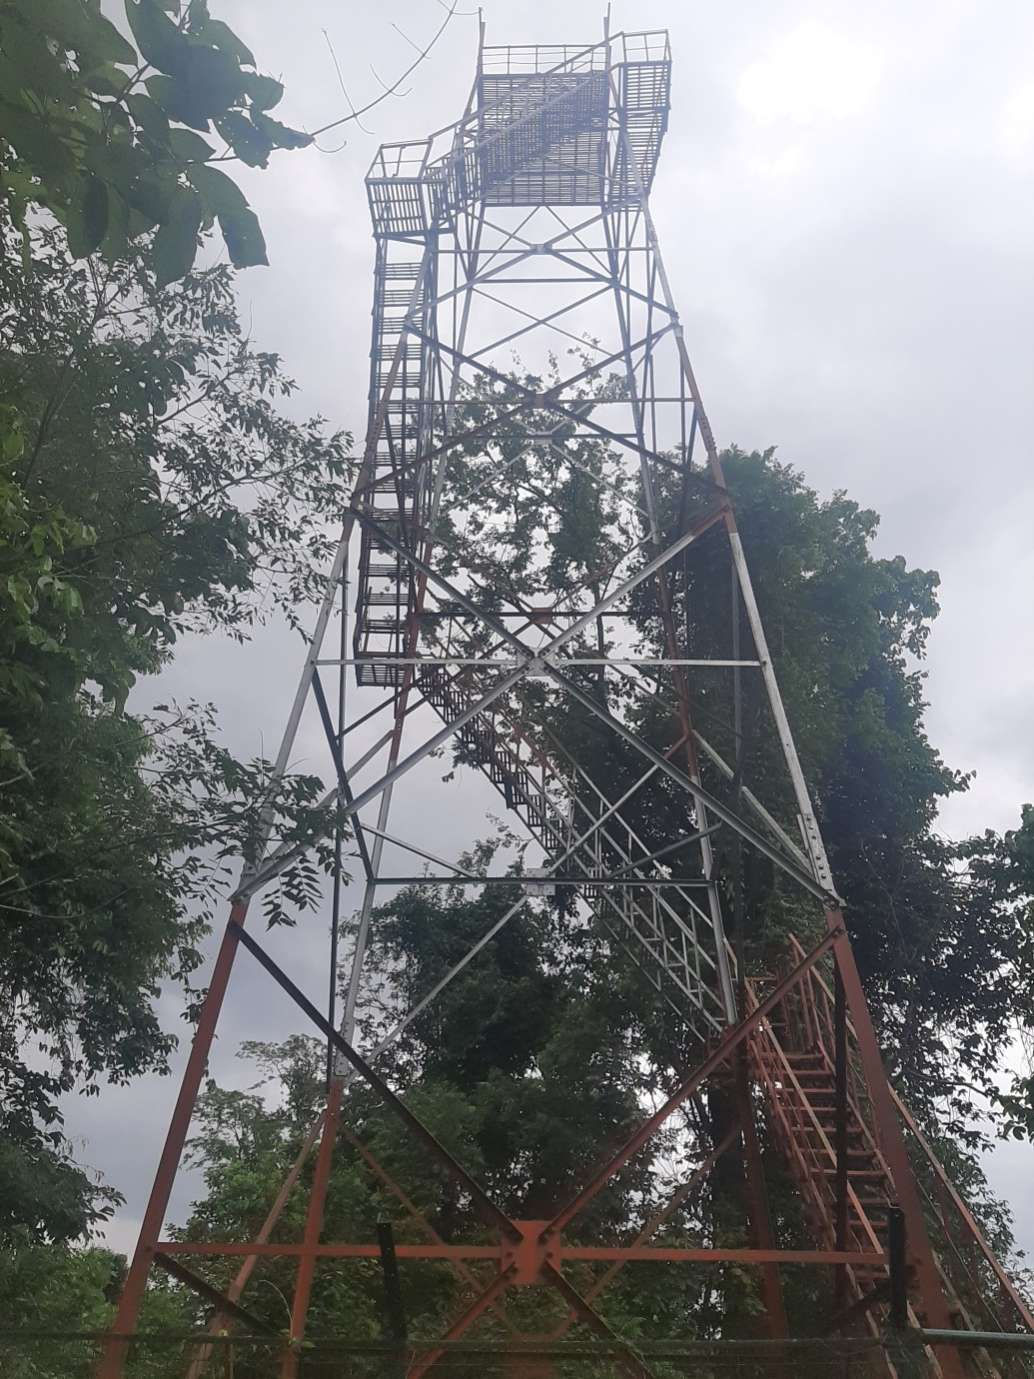 WATCH TOWER, ROWA WILDLIFE SANCTUARY